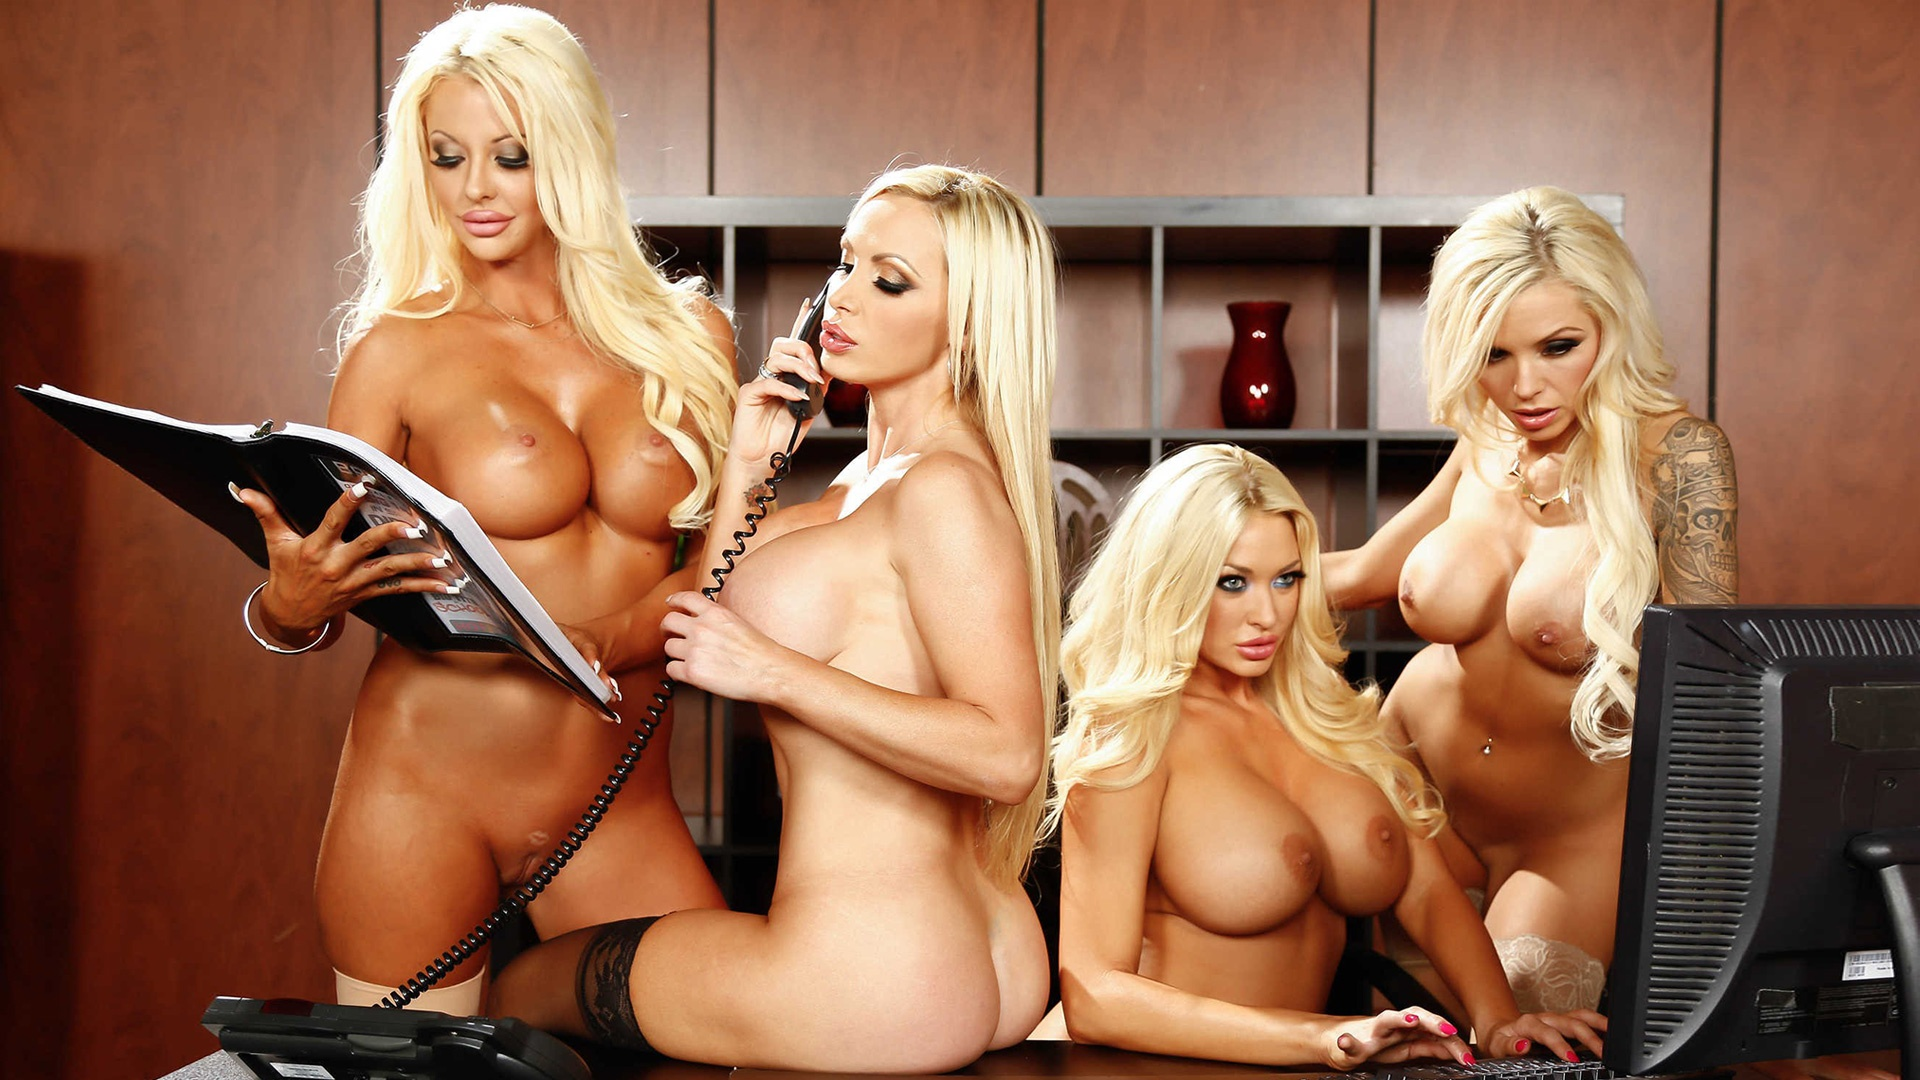 Nude blonde pornstar movie